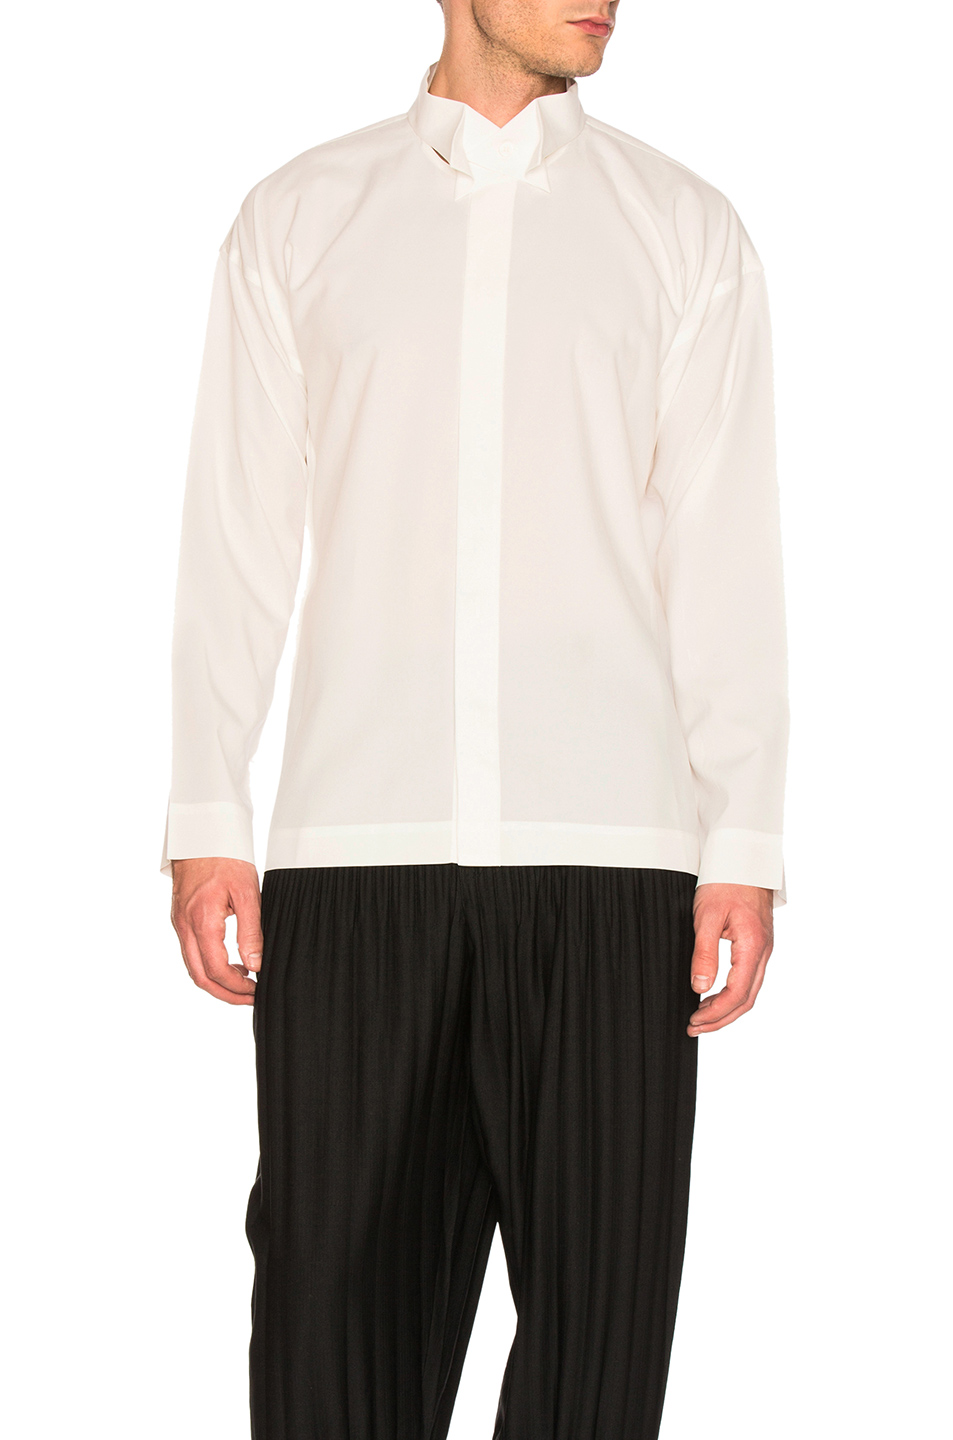 Issey Miyake Homme Plisse Bow Tie Press Shirt in White